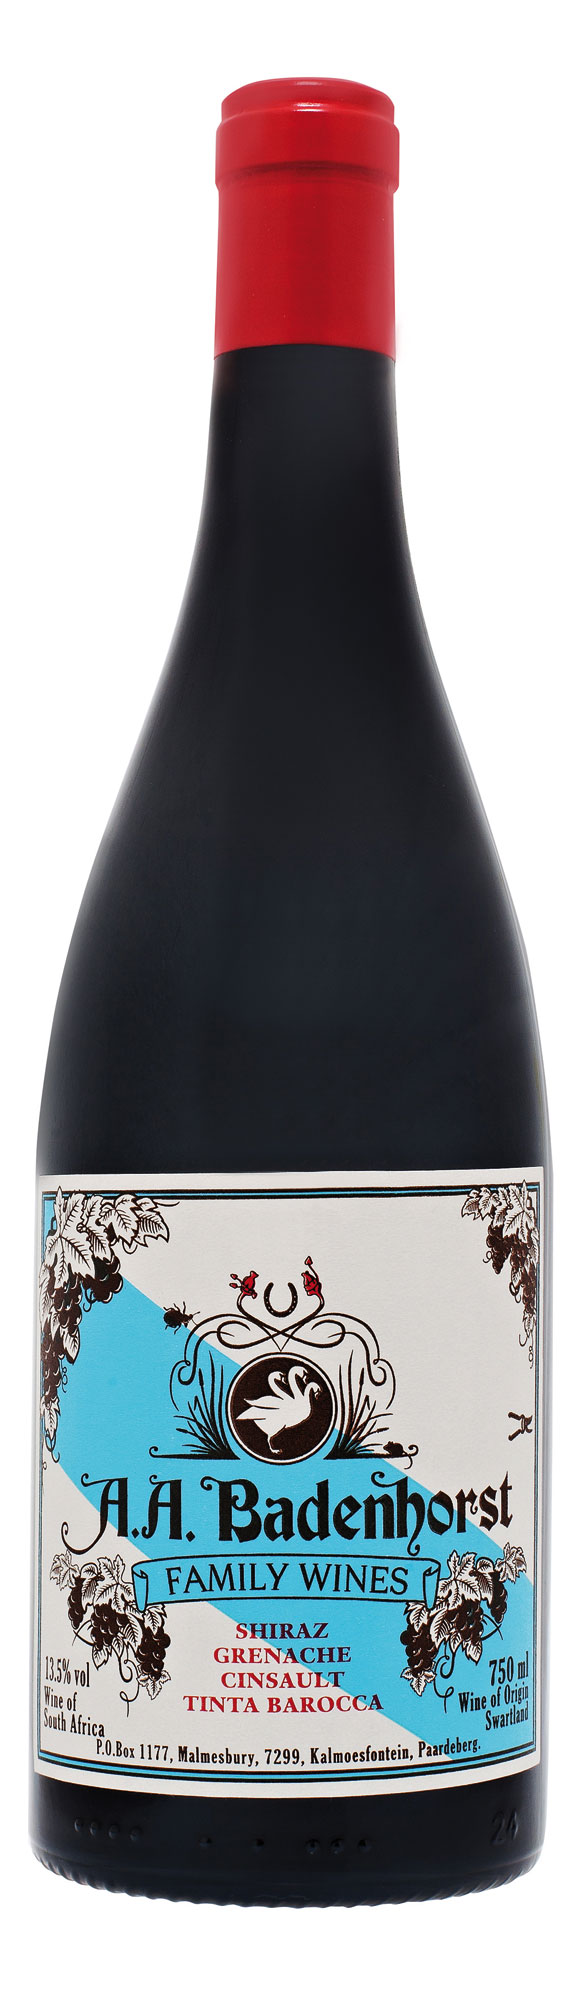 A.A Badenhorst Family Wines 2014